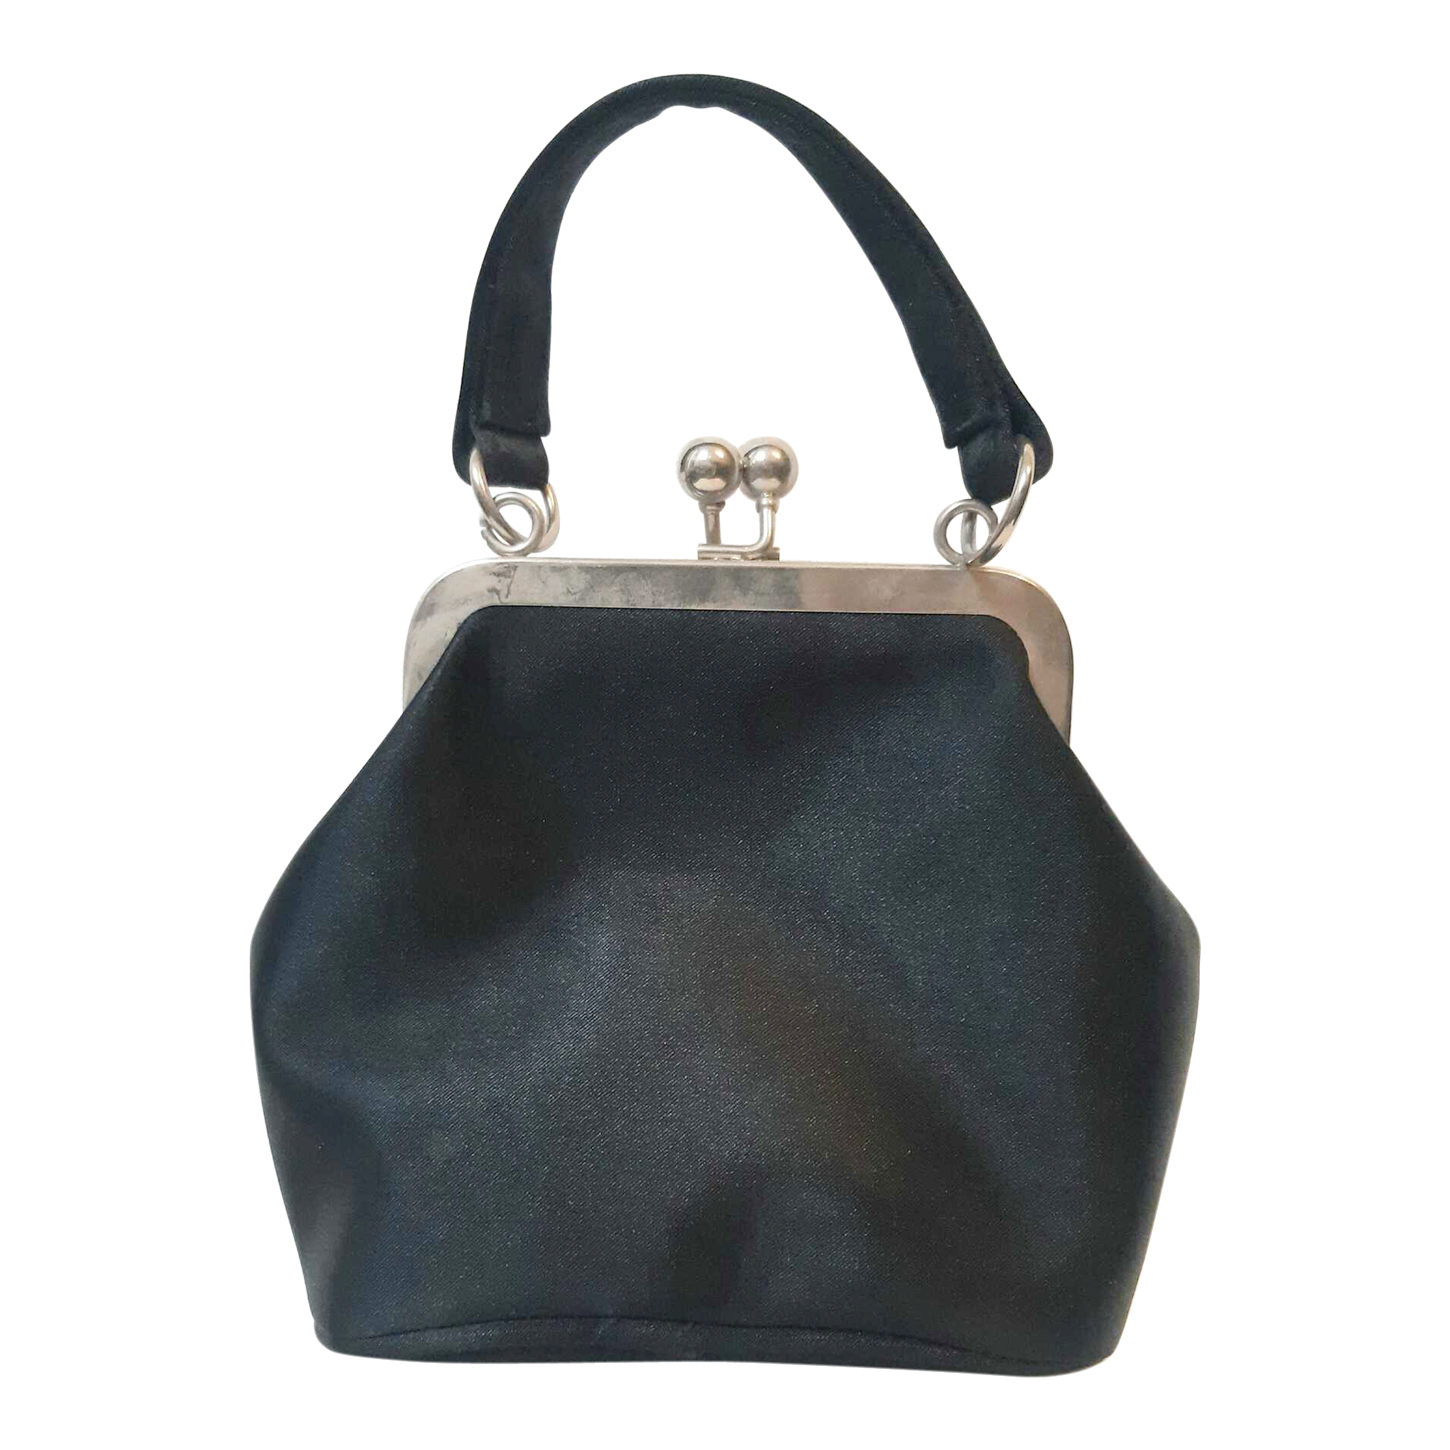 Mini sac en satin